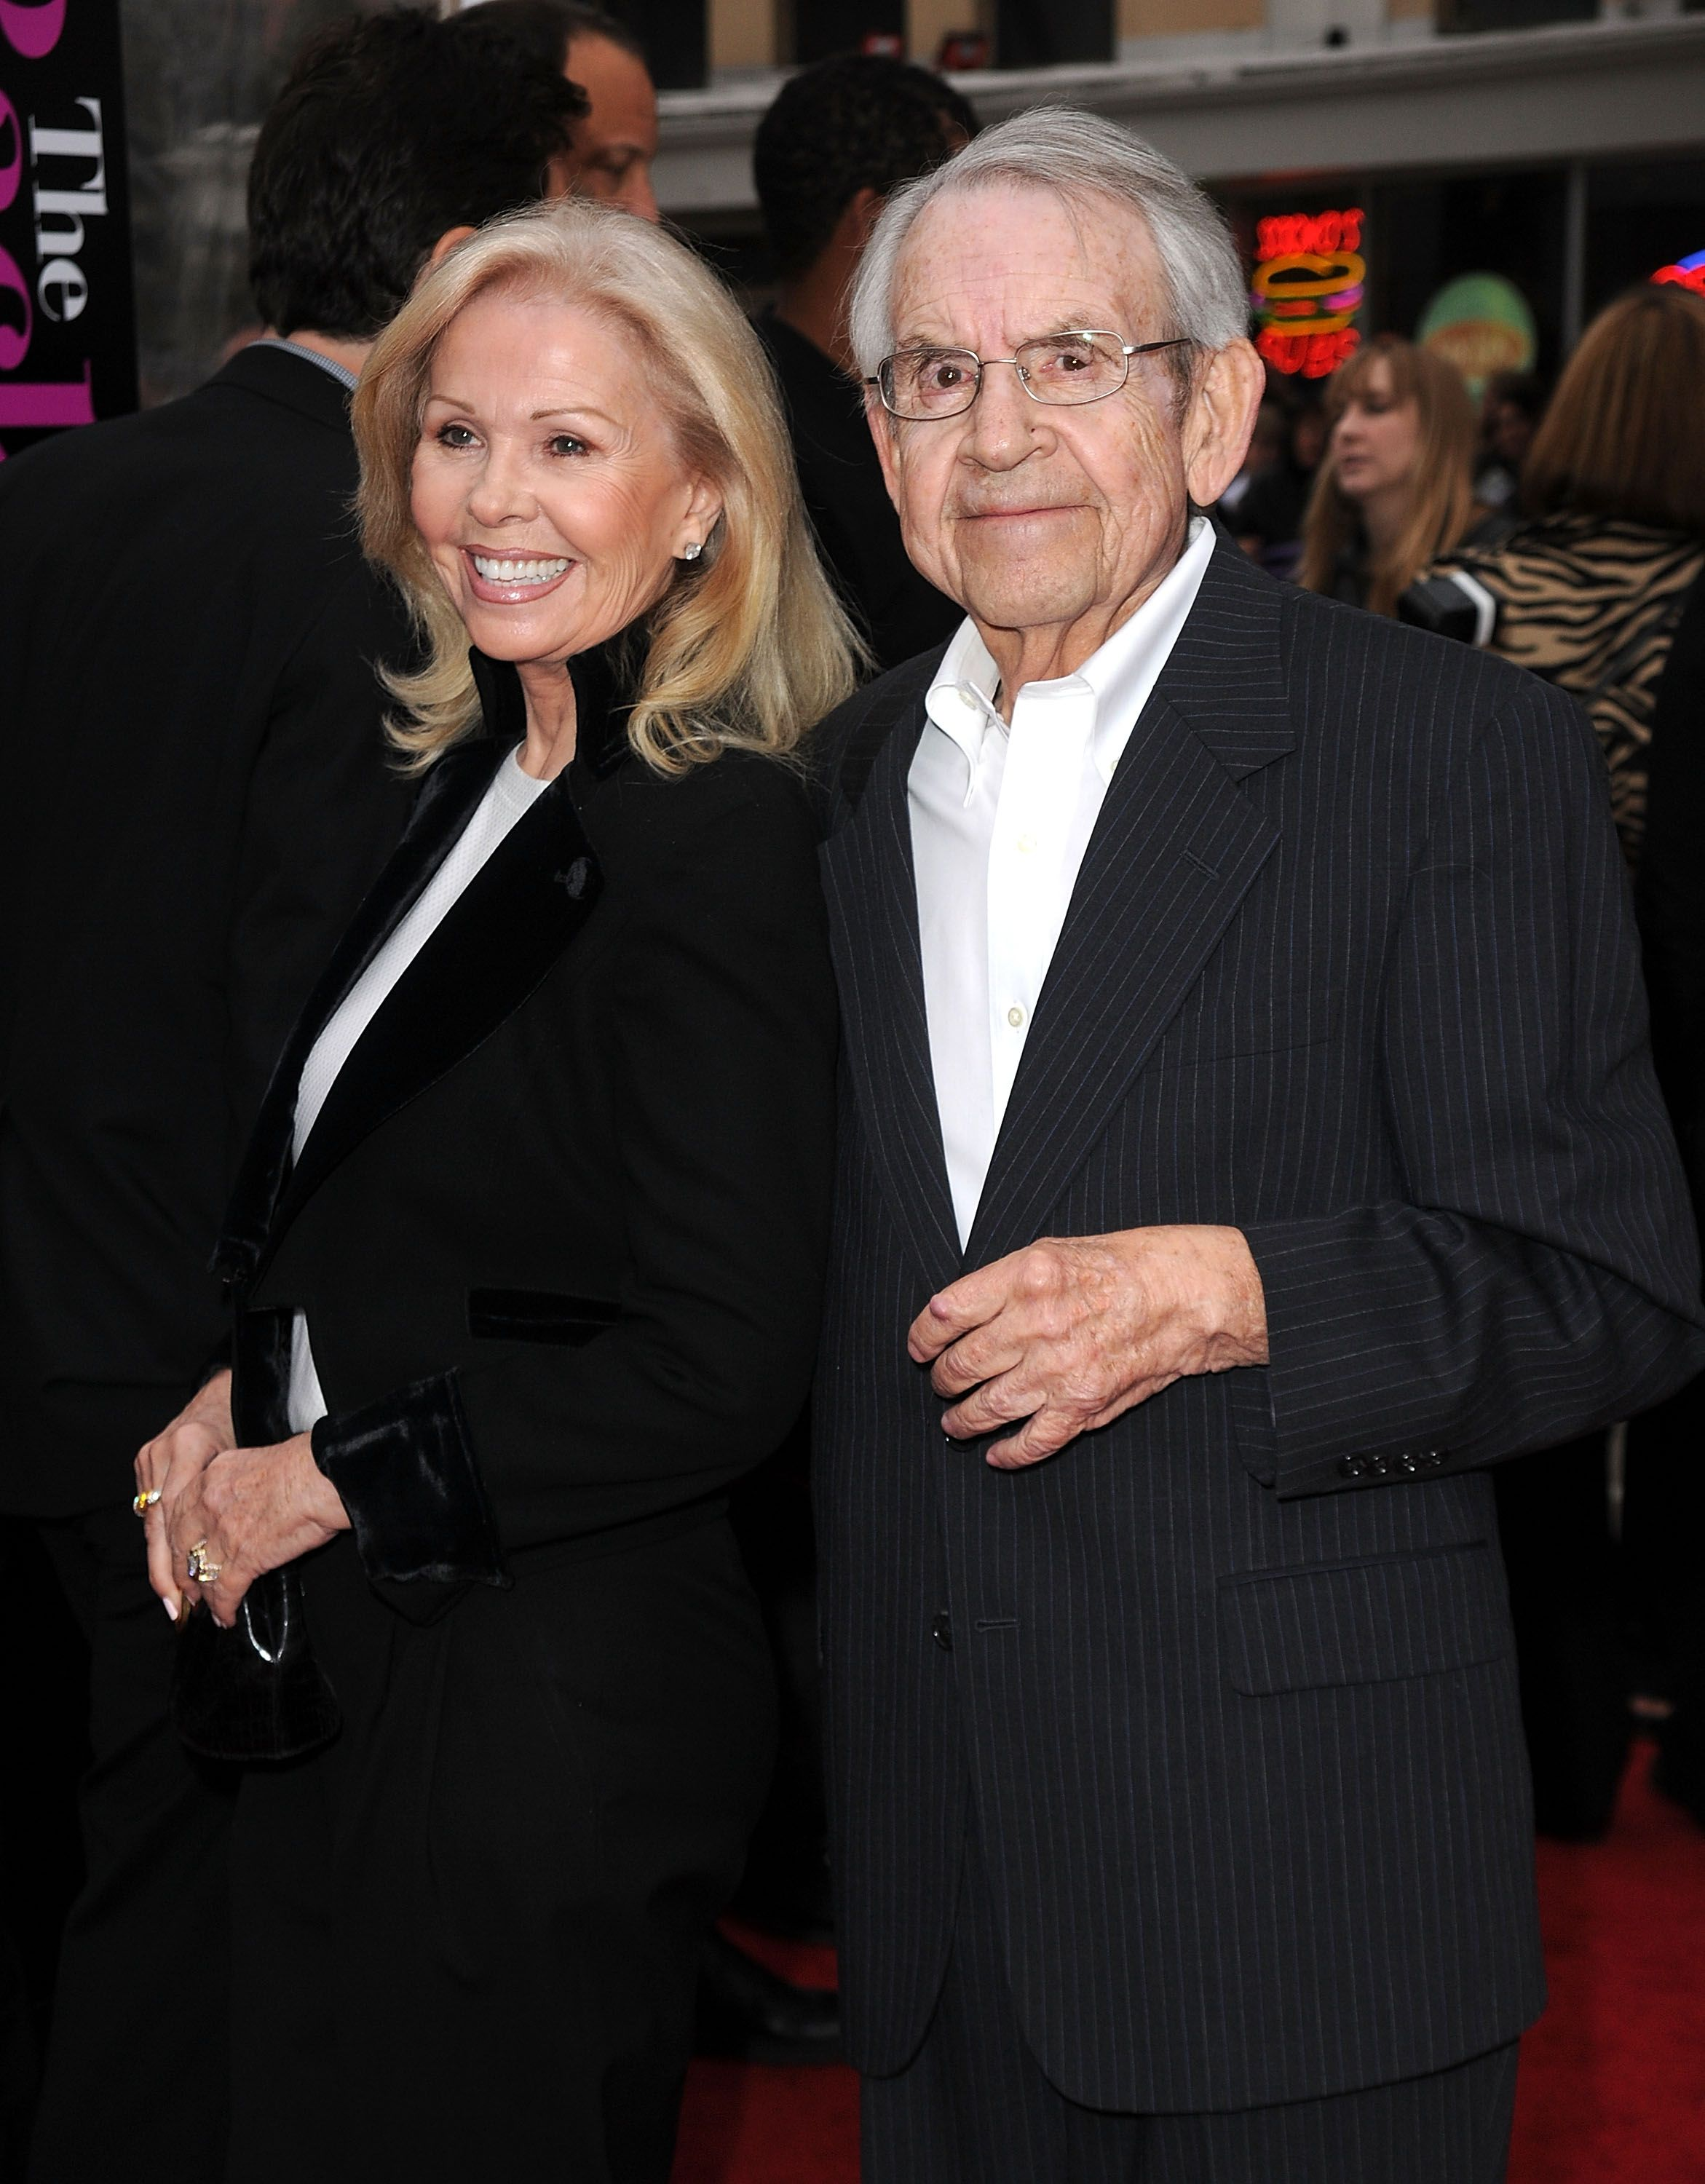 Tom Bosley and Patricia Carr arrive at the premiere of CBS Films' 'The Back-Up Plan' held at the Regency Village Theatre on April 21, 2010 in Westwood, California. | Source: Getty Images